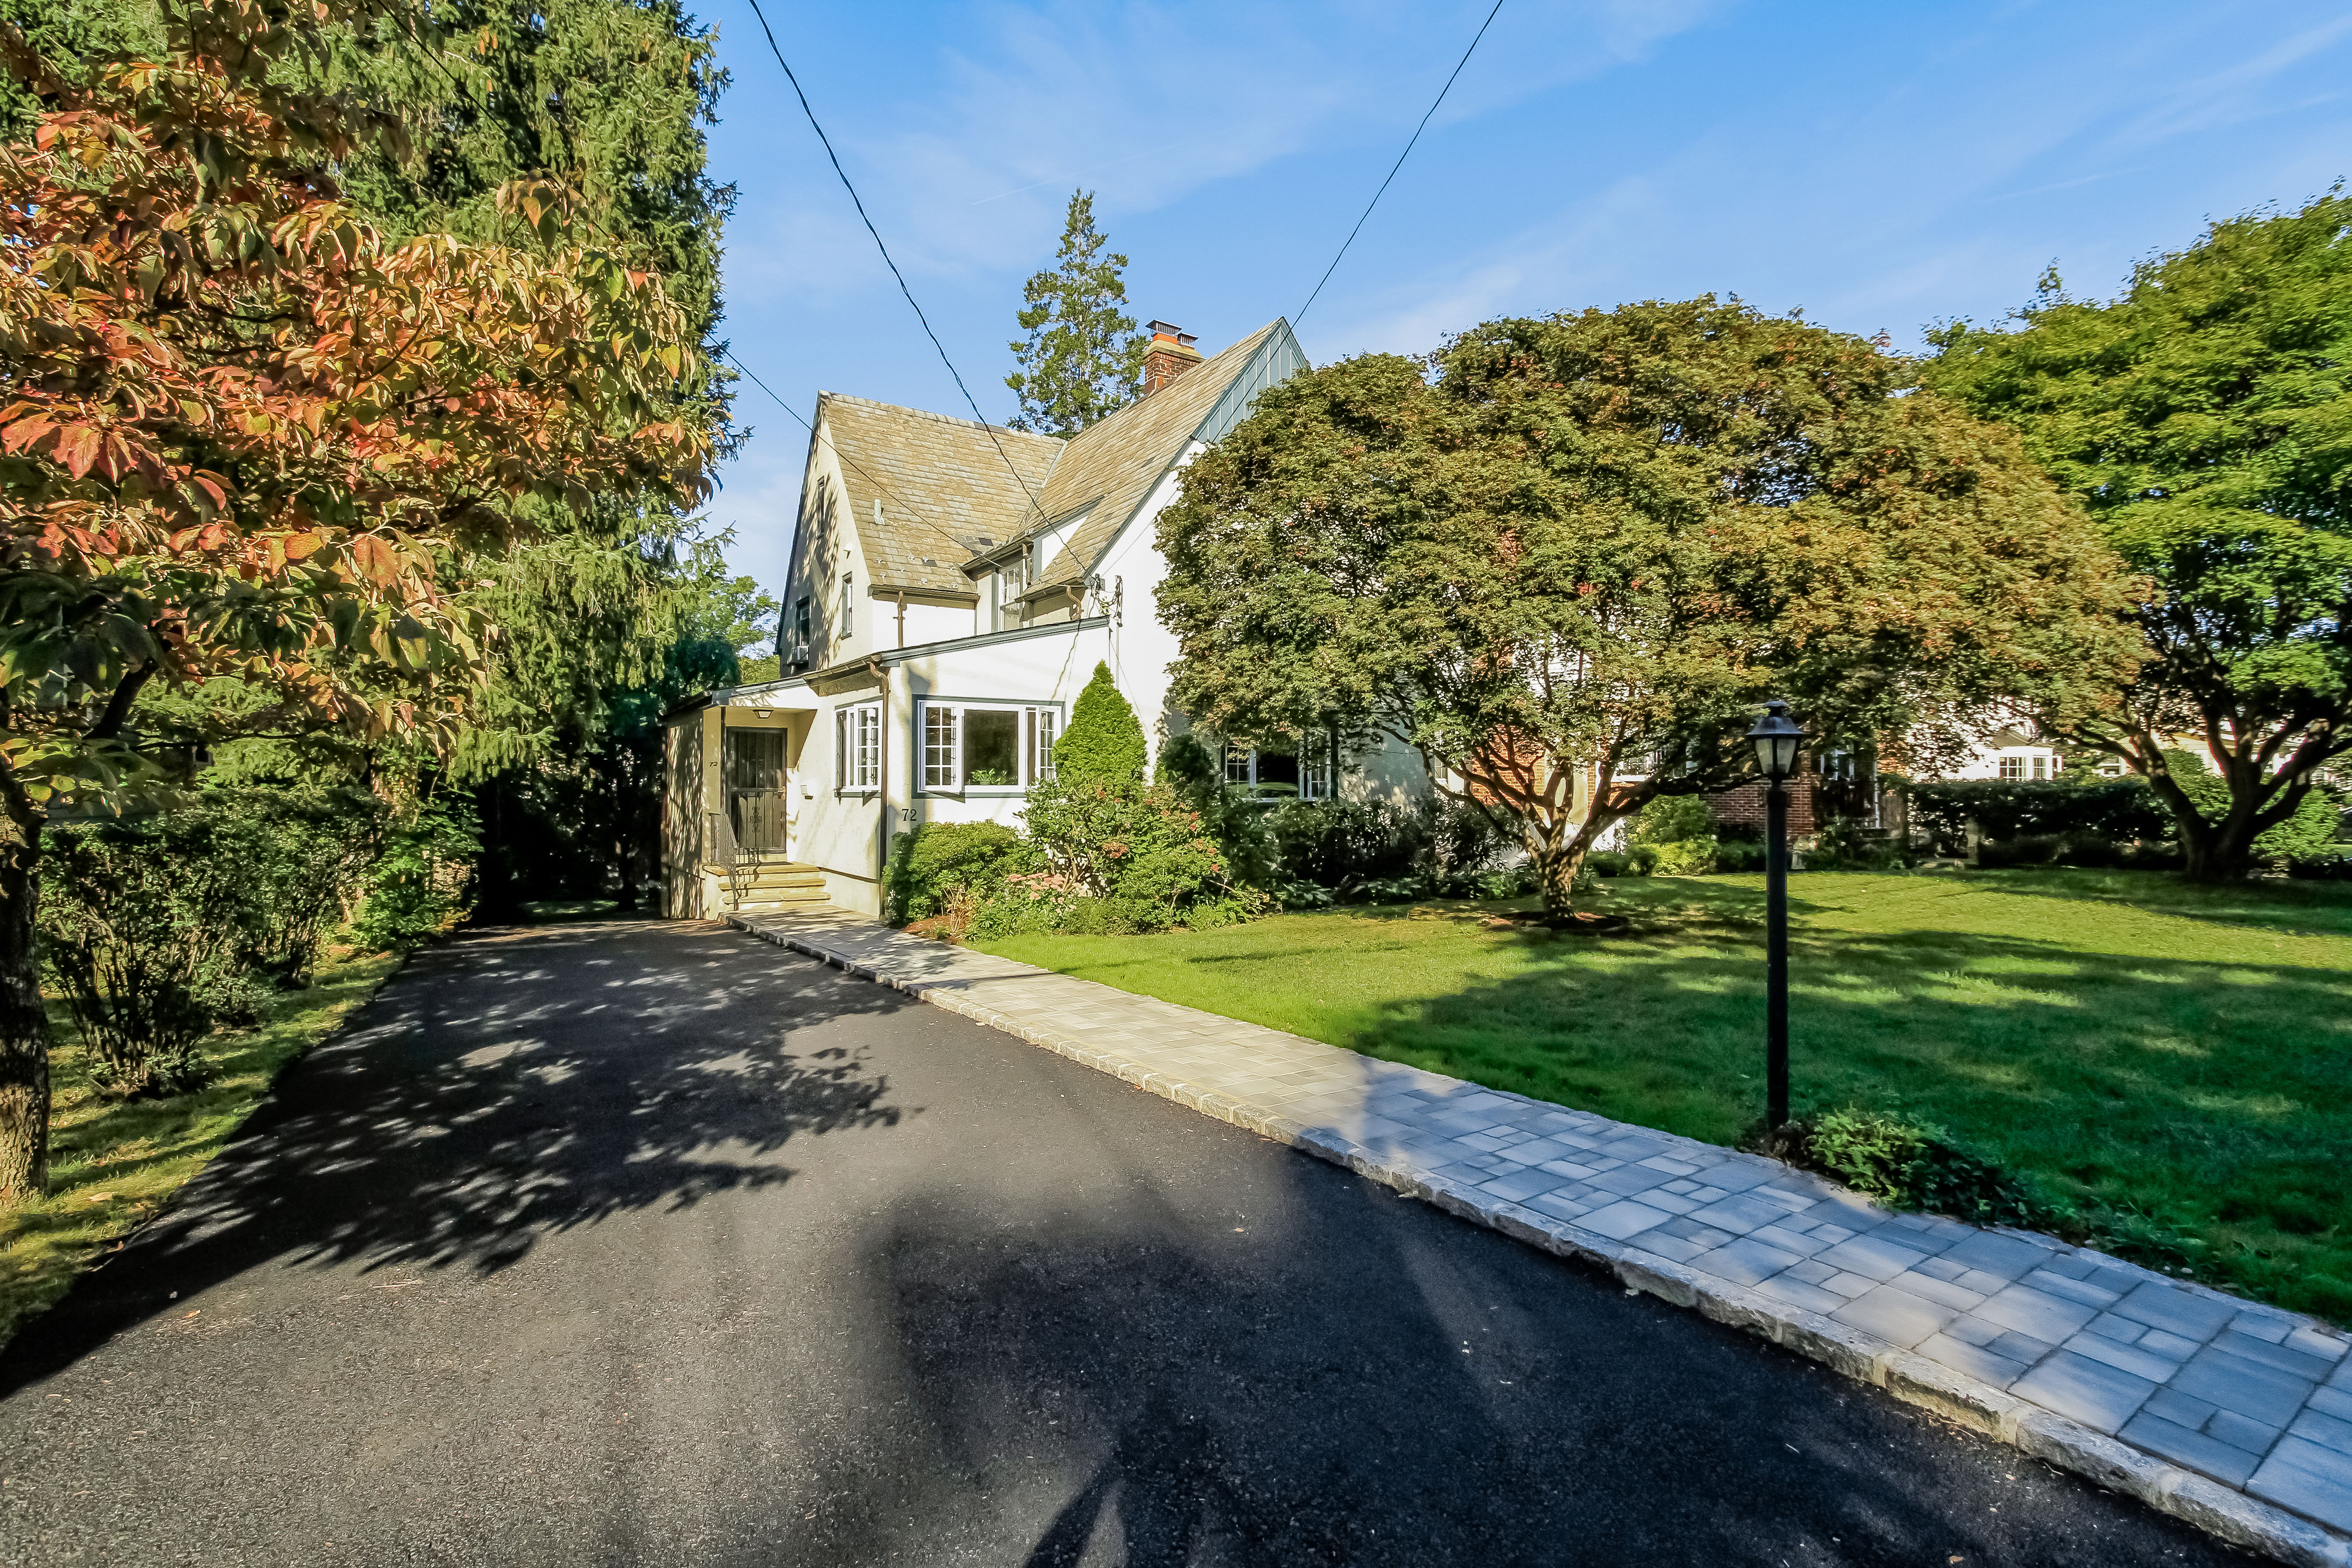 Single Family Home for Sale at 72 Tamarack Road Rye Brook, New York 10573 United States